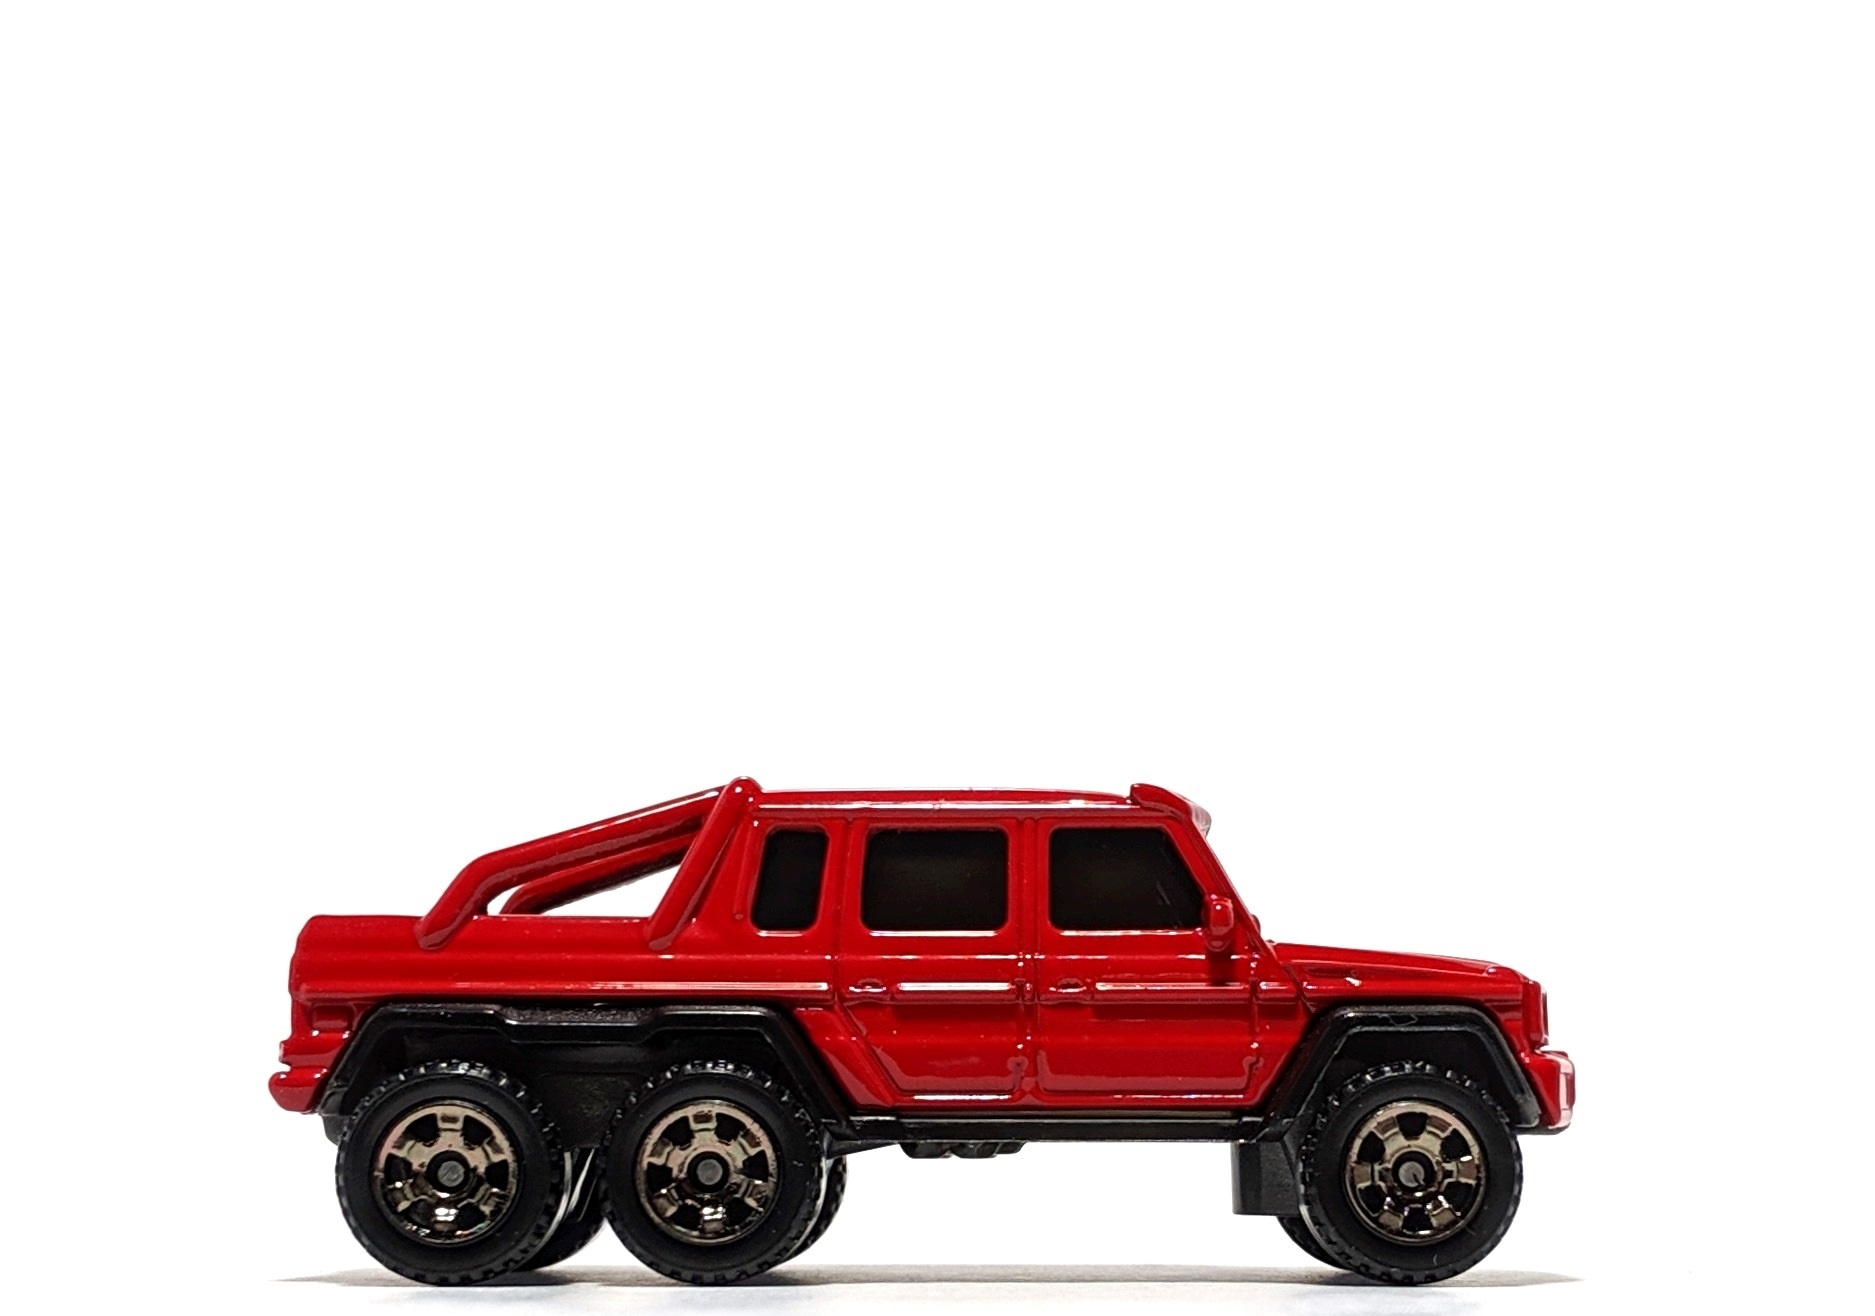 Mercedes-Benz G63 AMG 6x6, by Matchbox